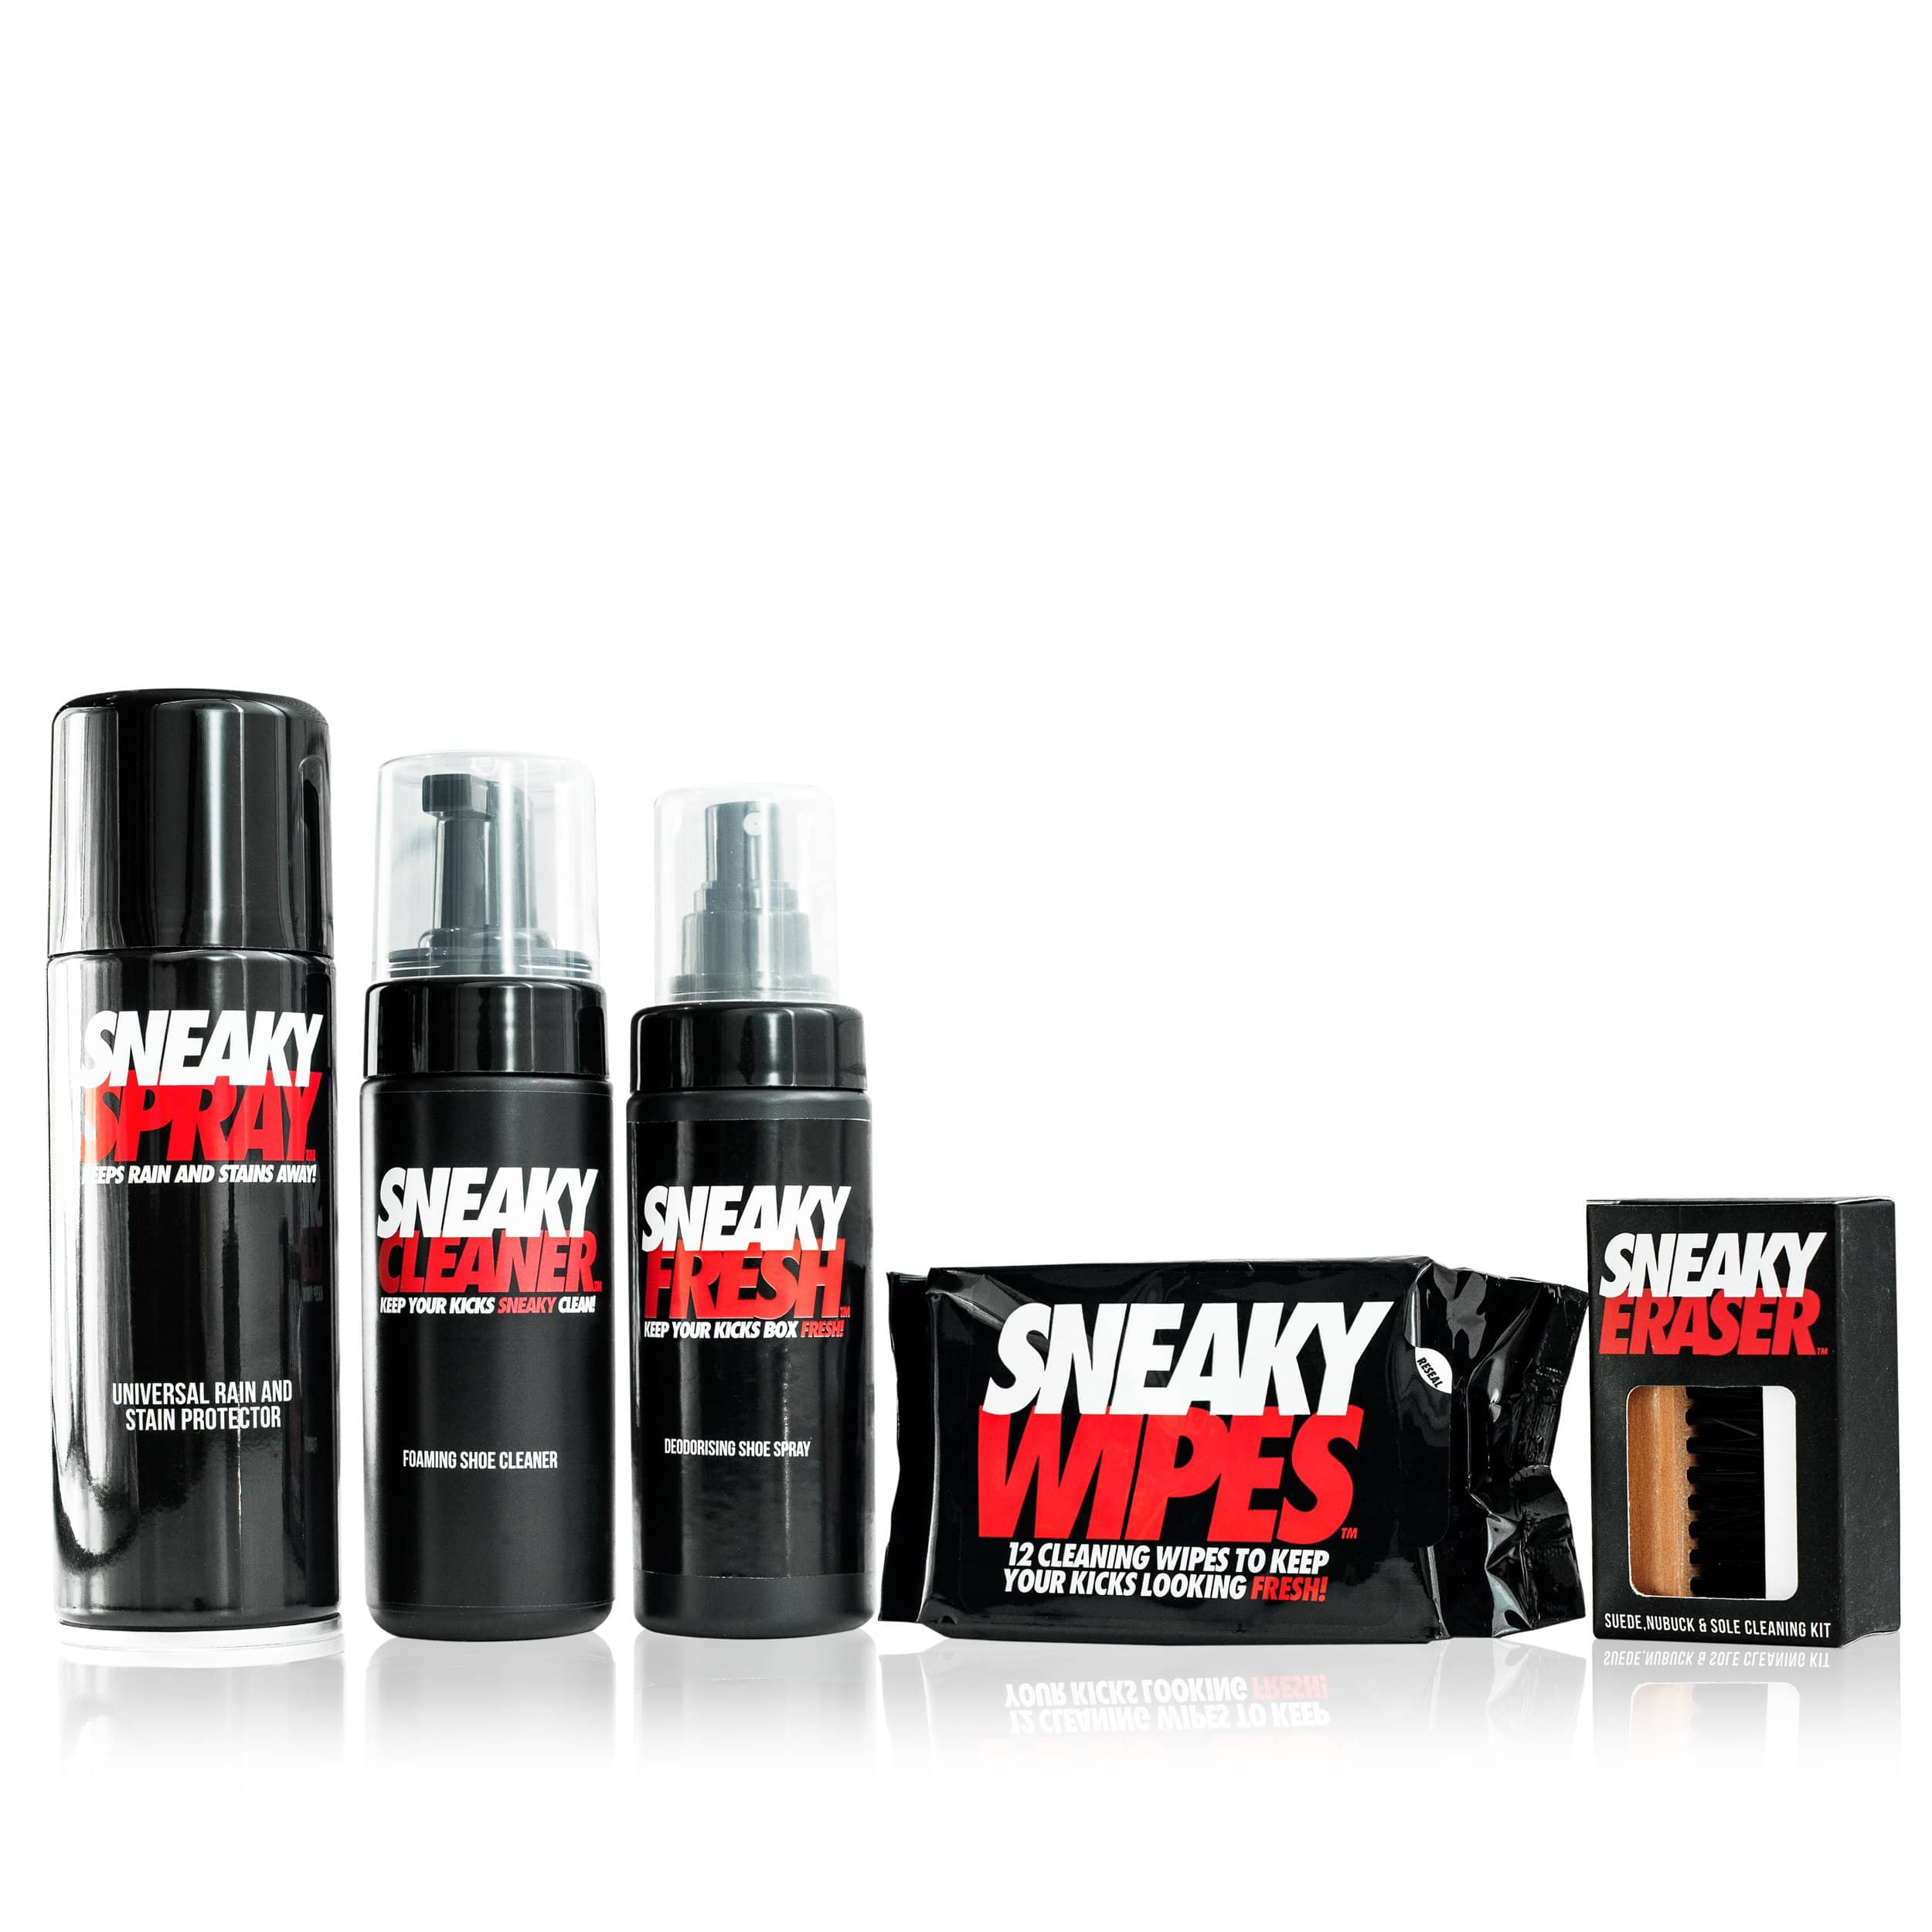 Sneaky Complete Shoe Cleaning Kit - Kick Game